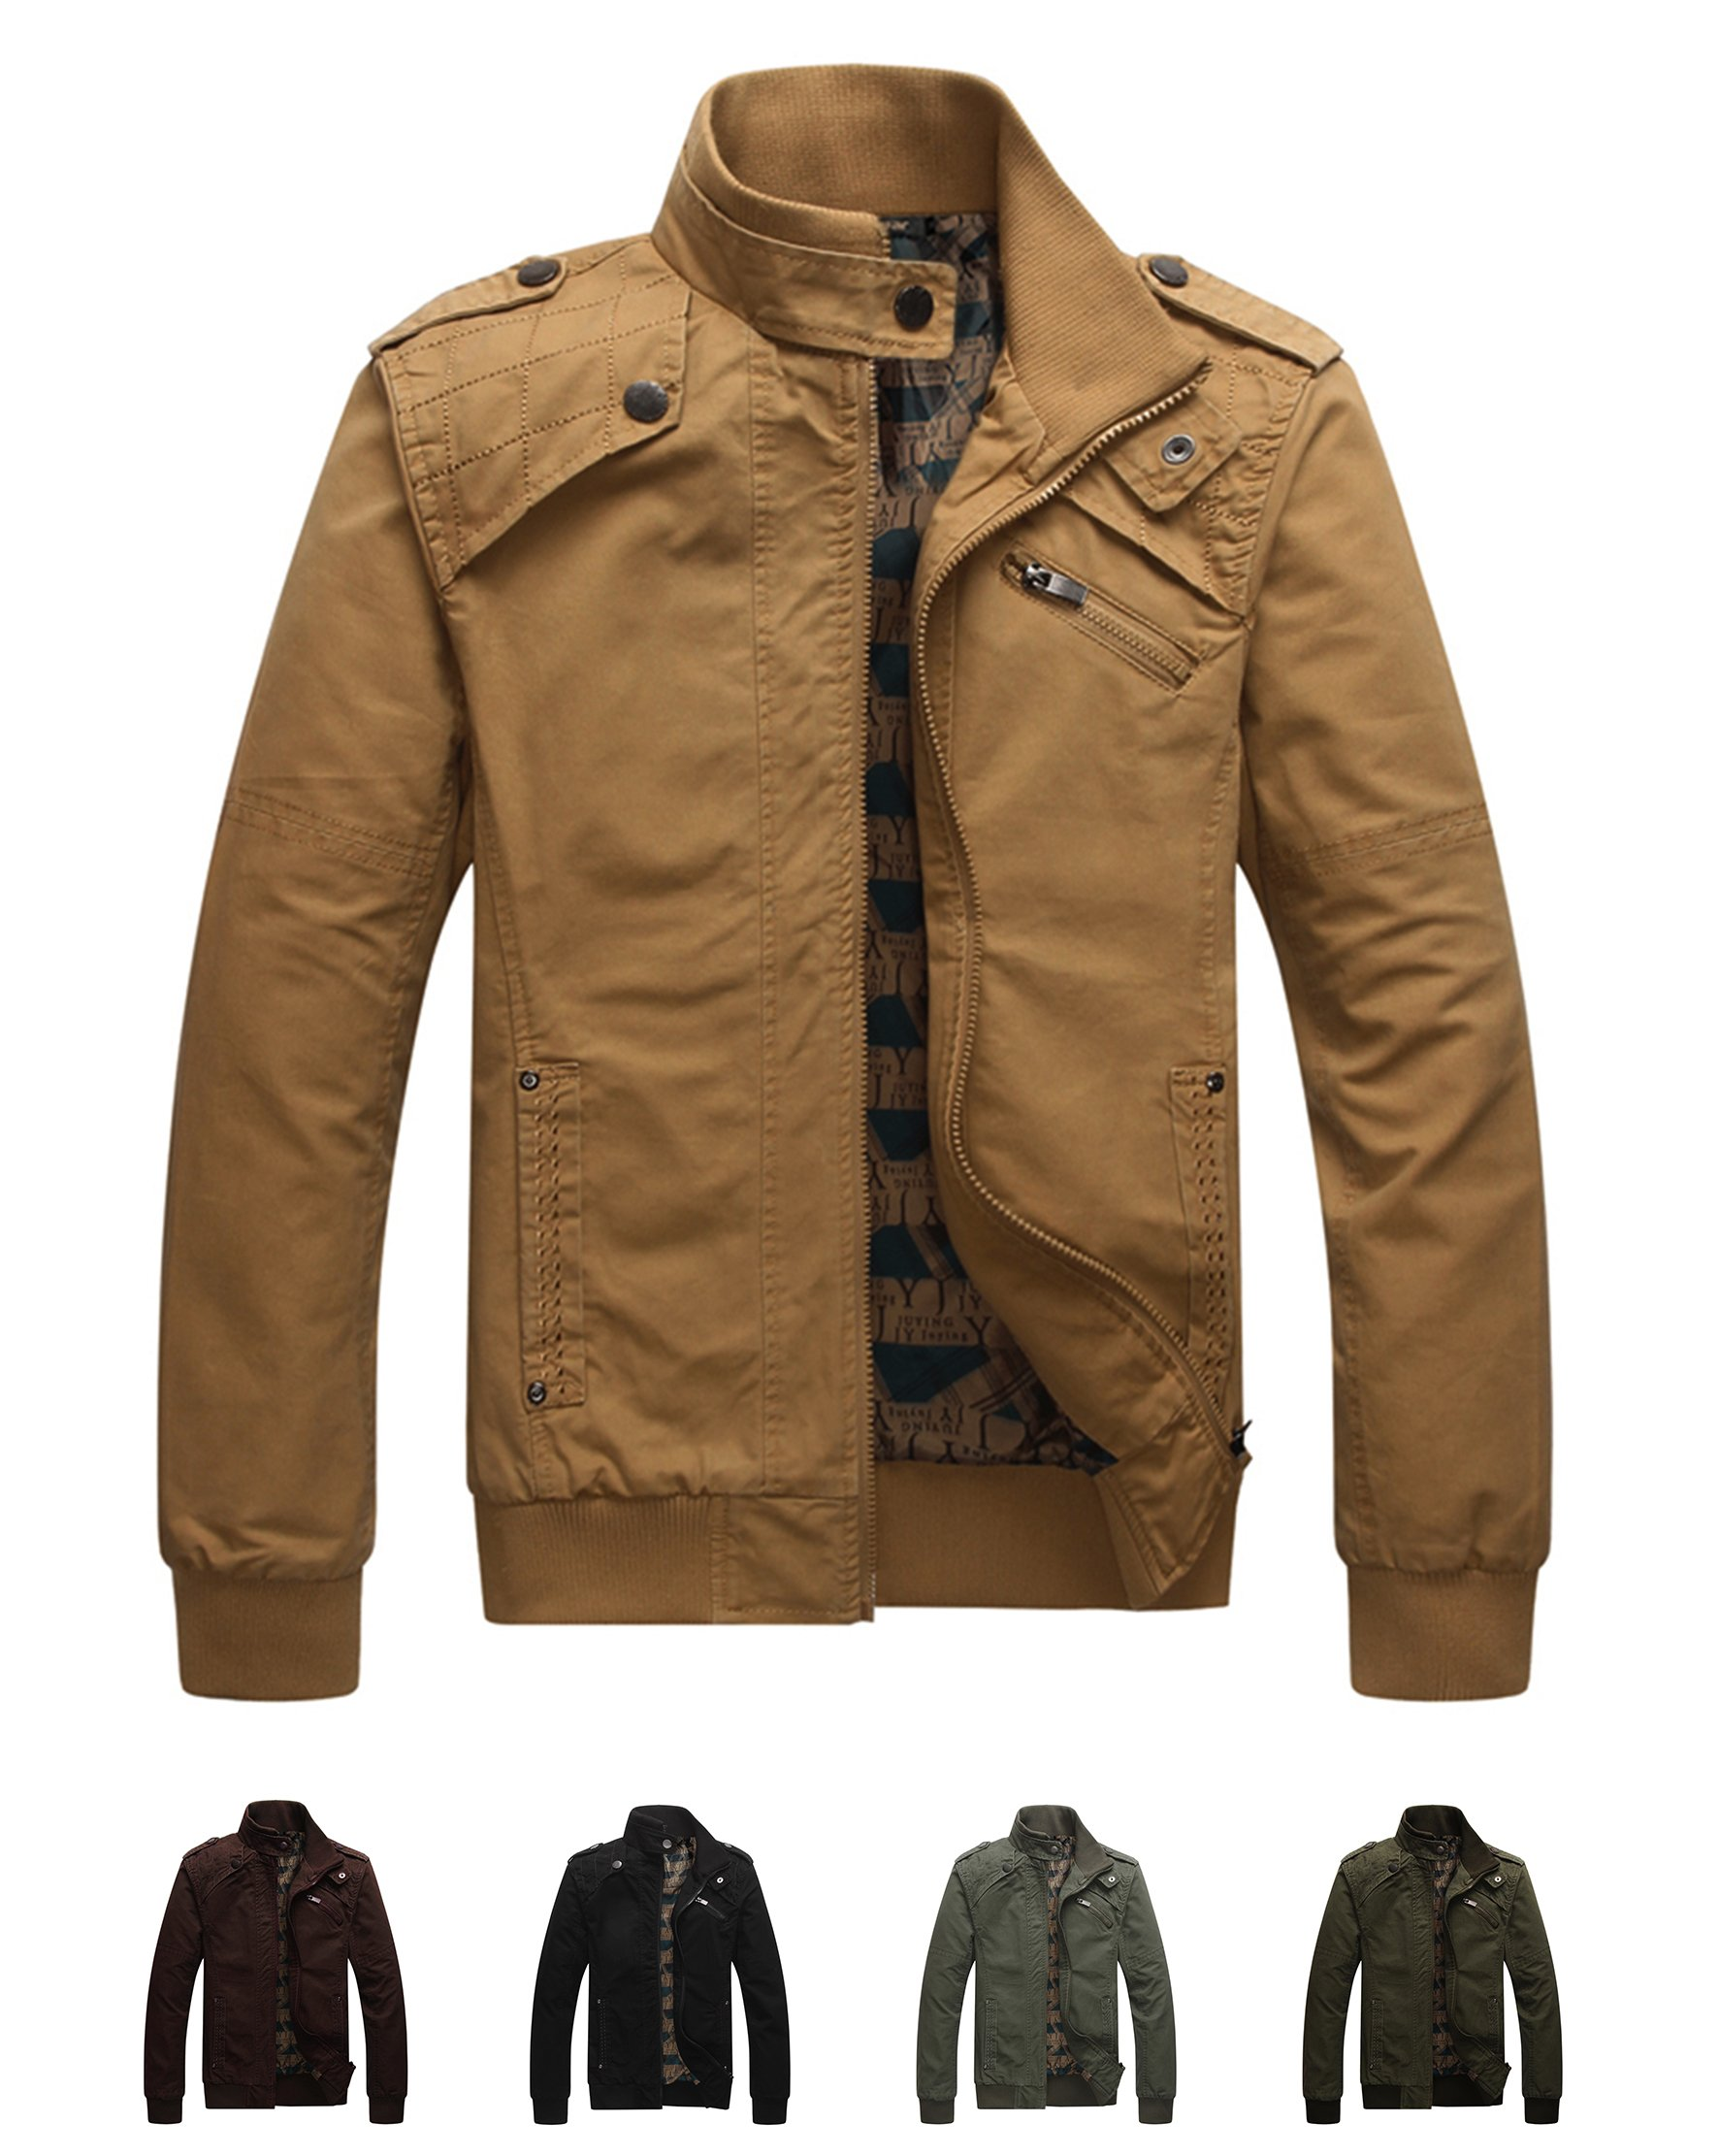 Earth Window Men's Casual Long Sleeve Full Zip Jacket with Shoulder Straps (Large,Khaki)